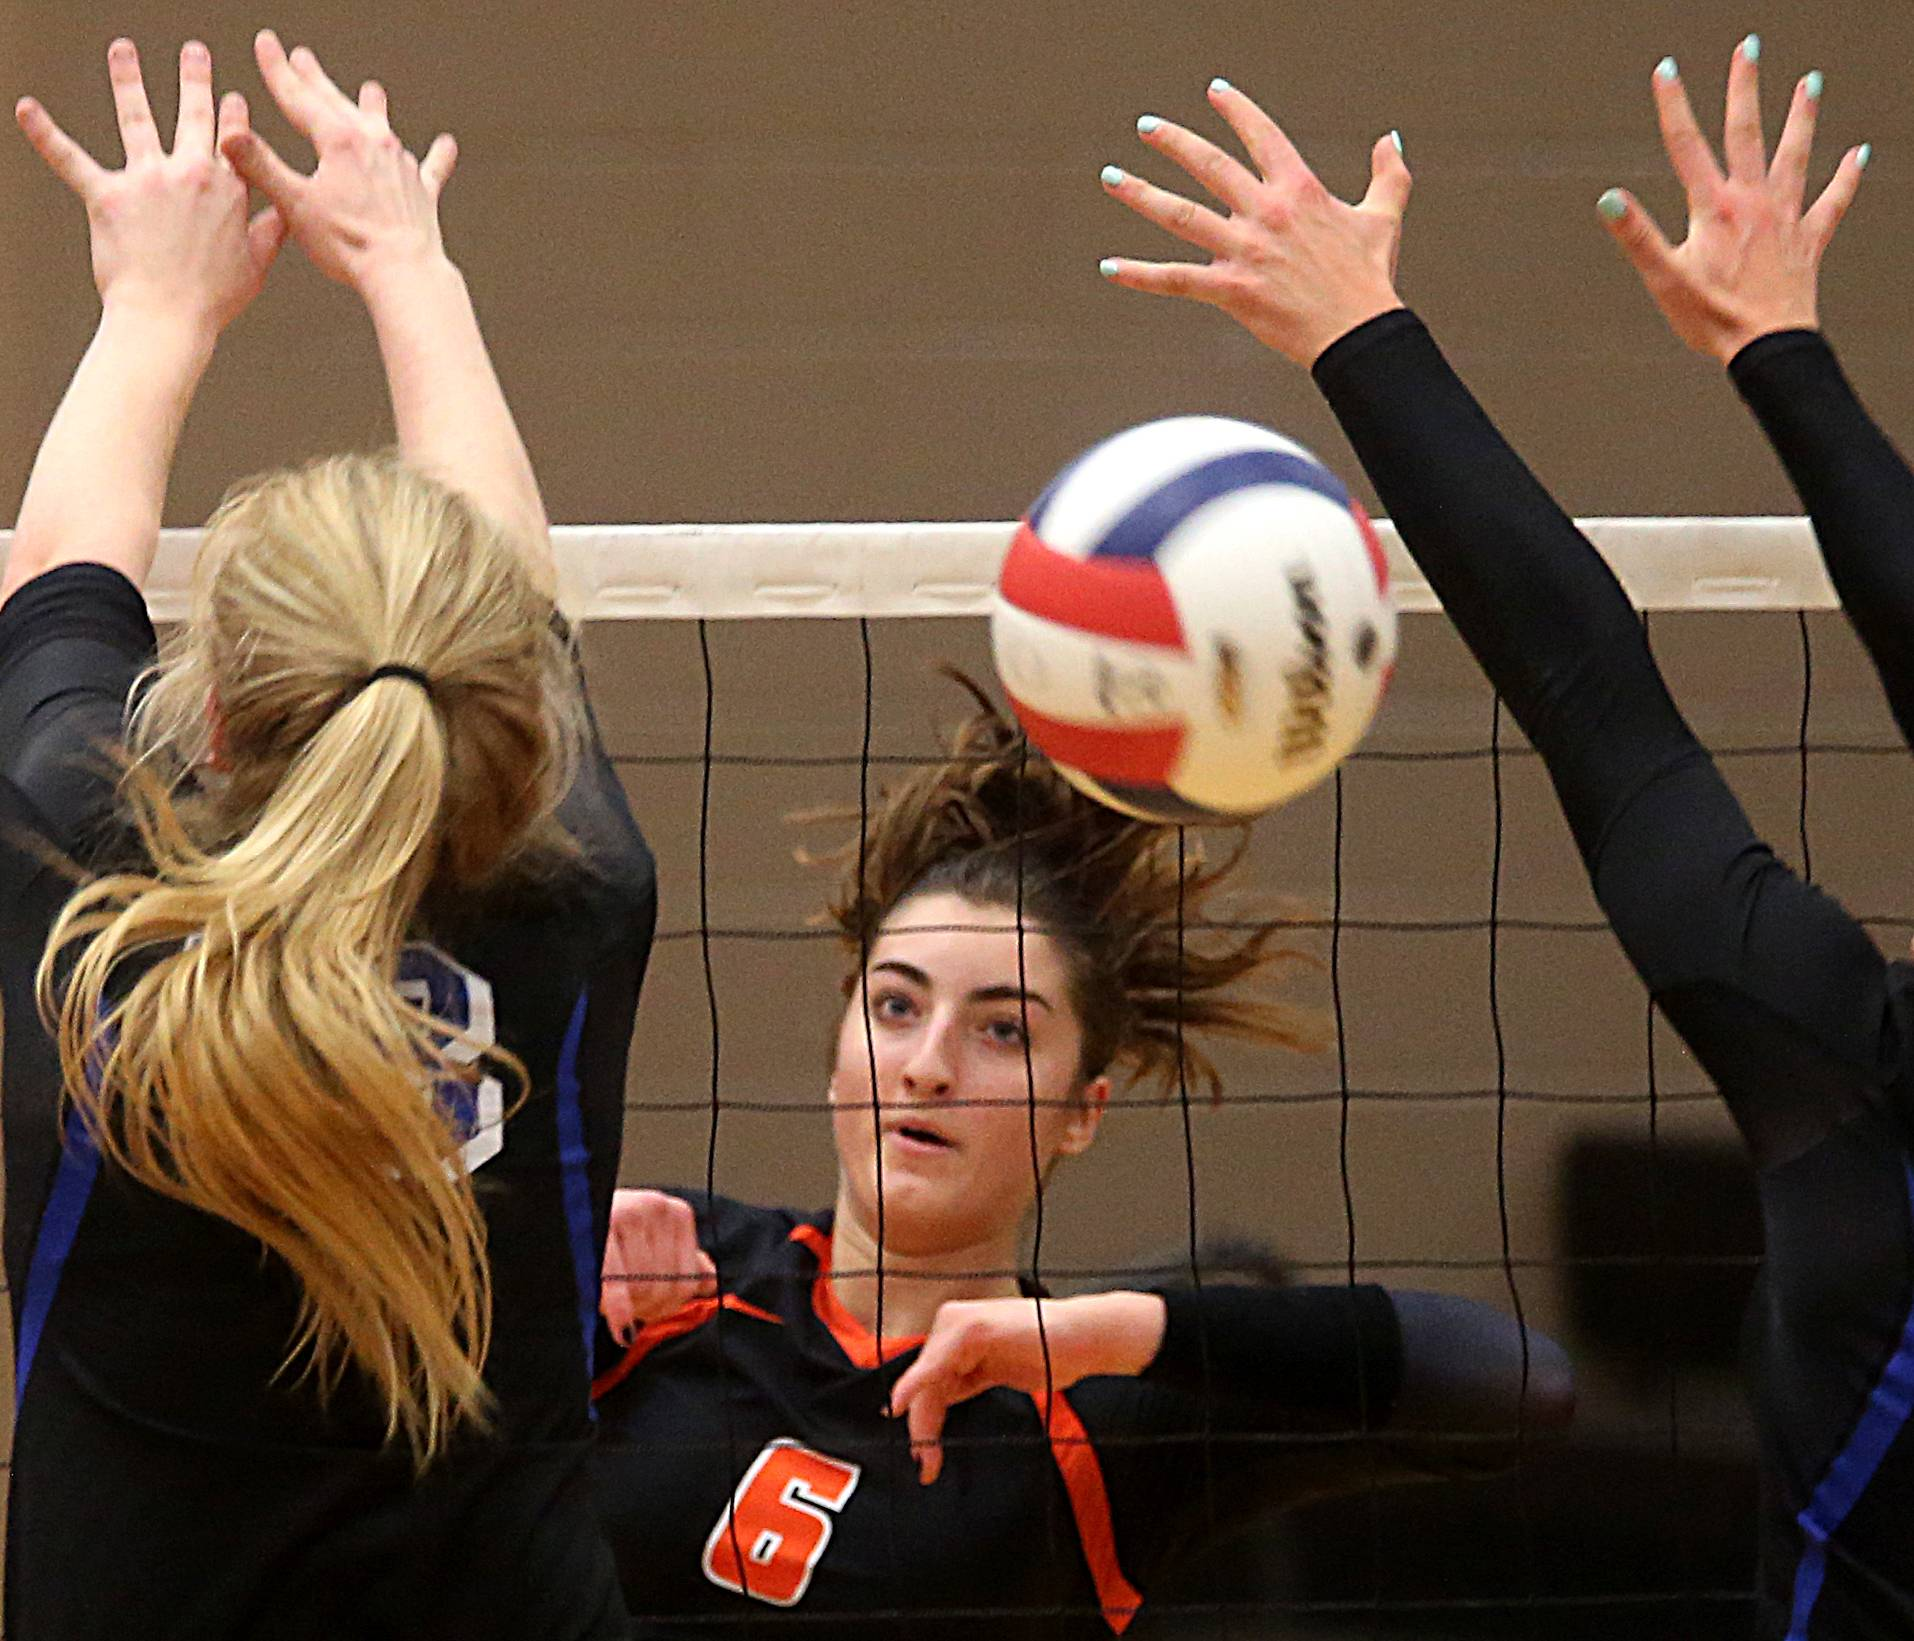 St. Charles East's Klaudia Sowizral completes a spike against St. Charles North during a Class 4A sectional title match at Chuck Dayton Gymnasium on the campus of DeKalb High School Wednesday night.